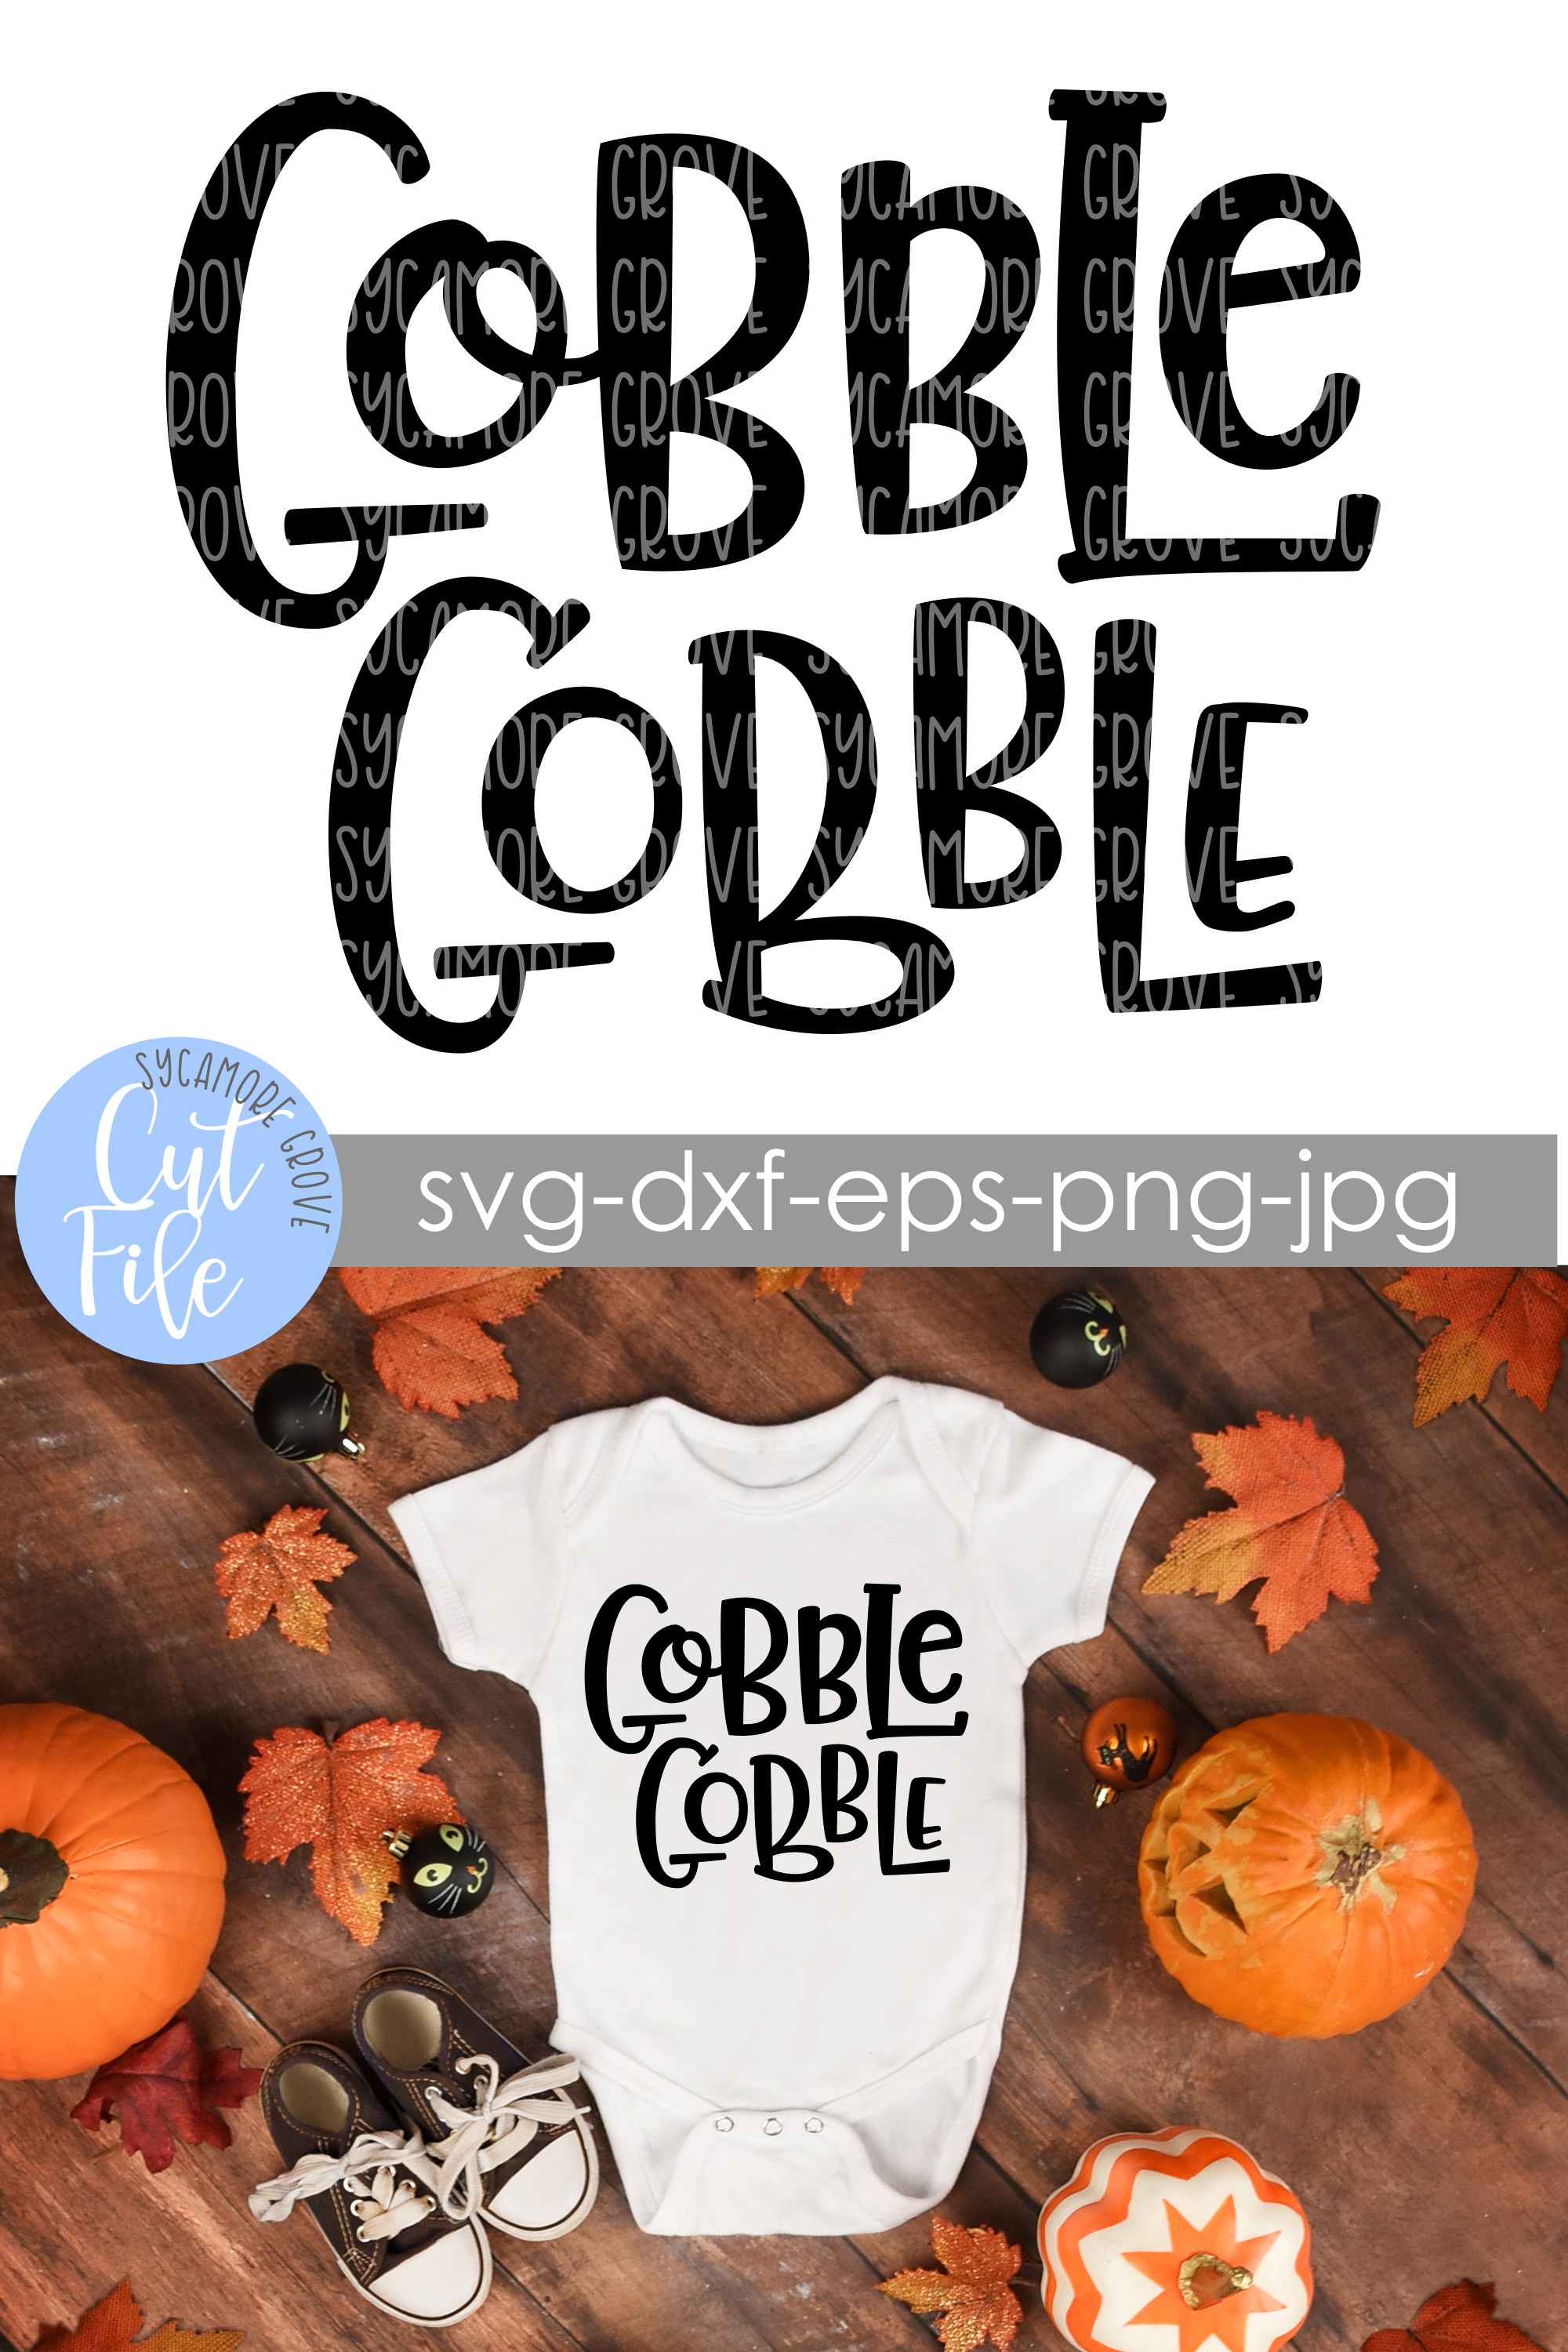 Gobble Gobble | Thanksgiving | Fall | SVG Cut File example image 6